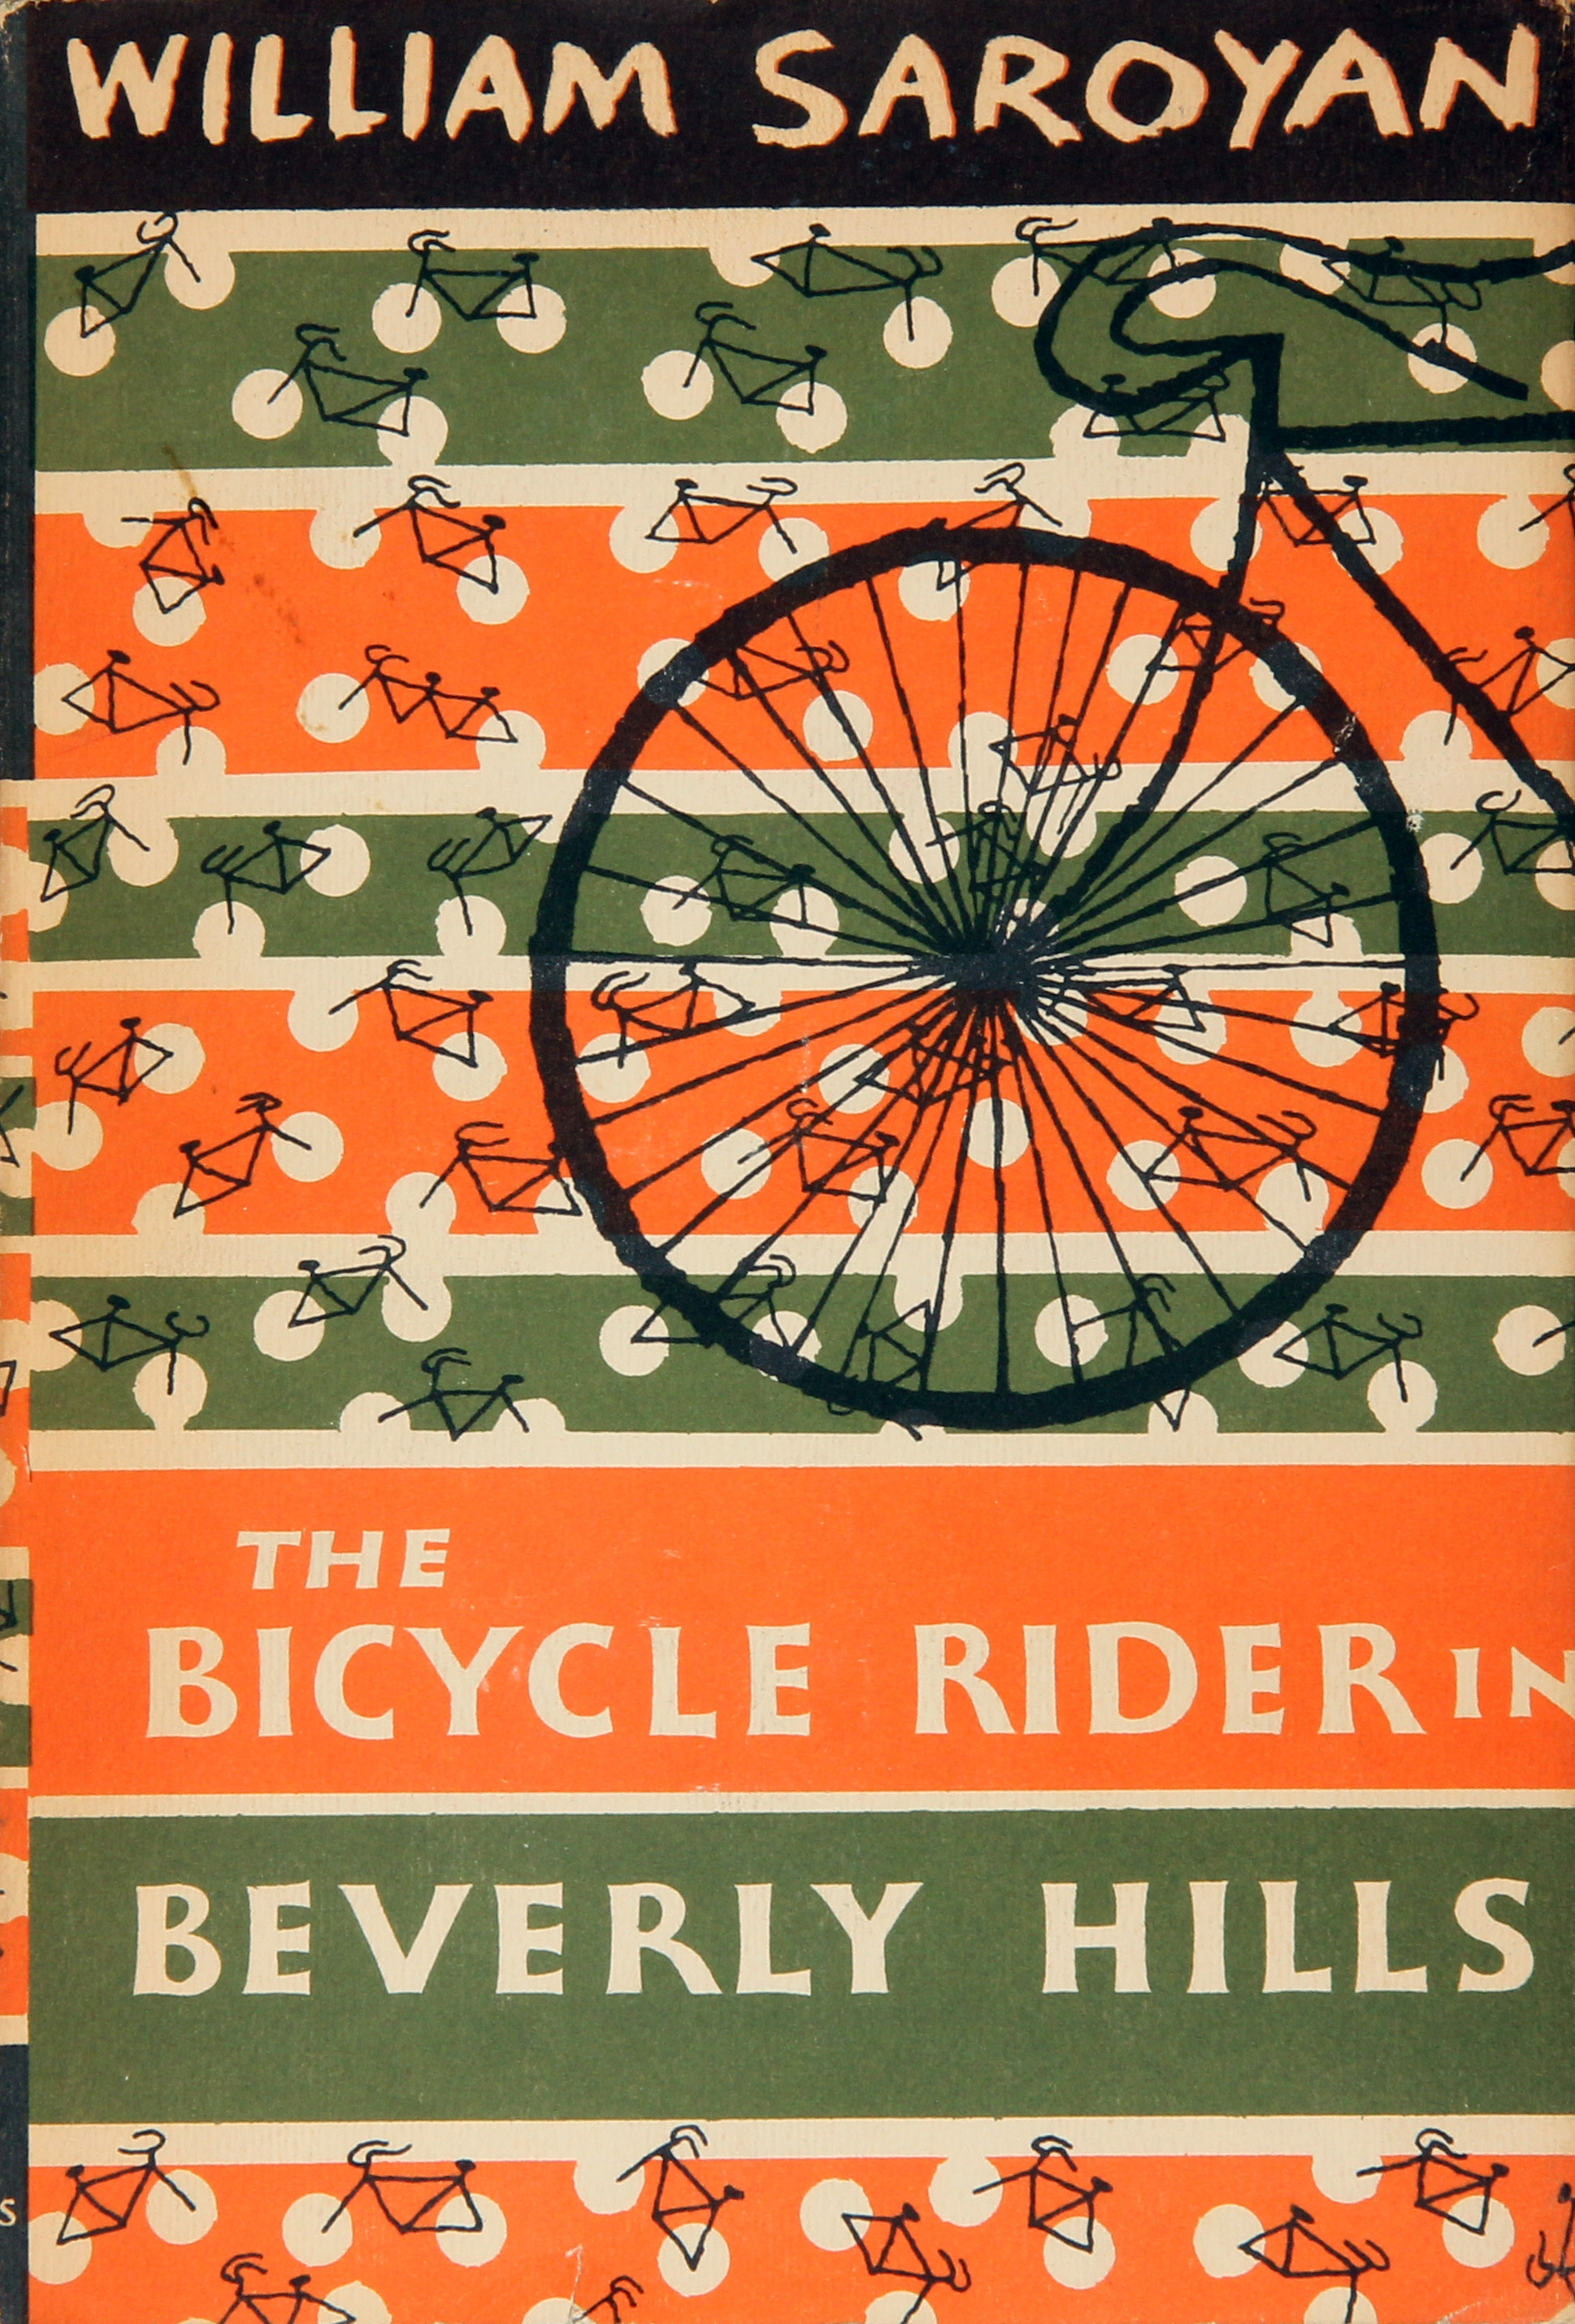 The Bicycle Rider in Beverly Hills (1952)